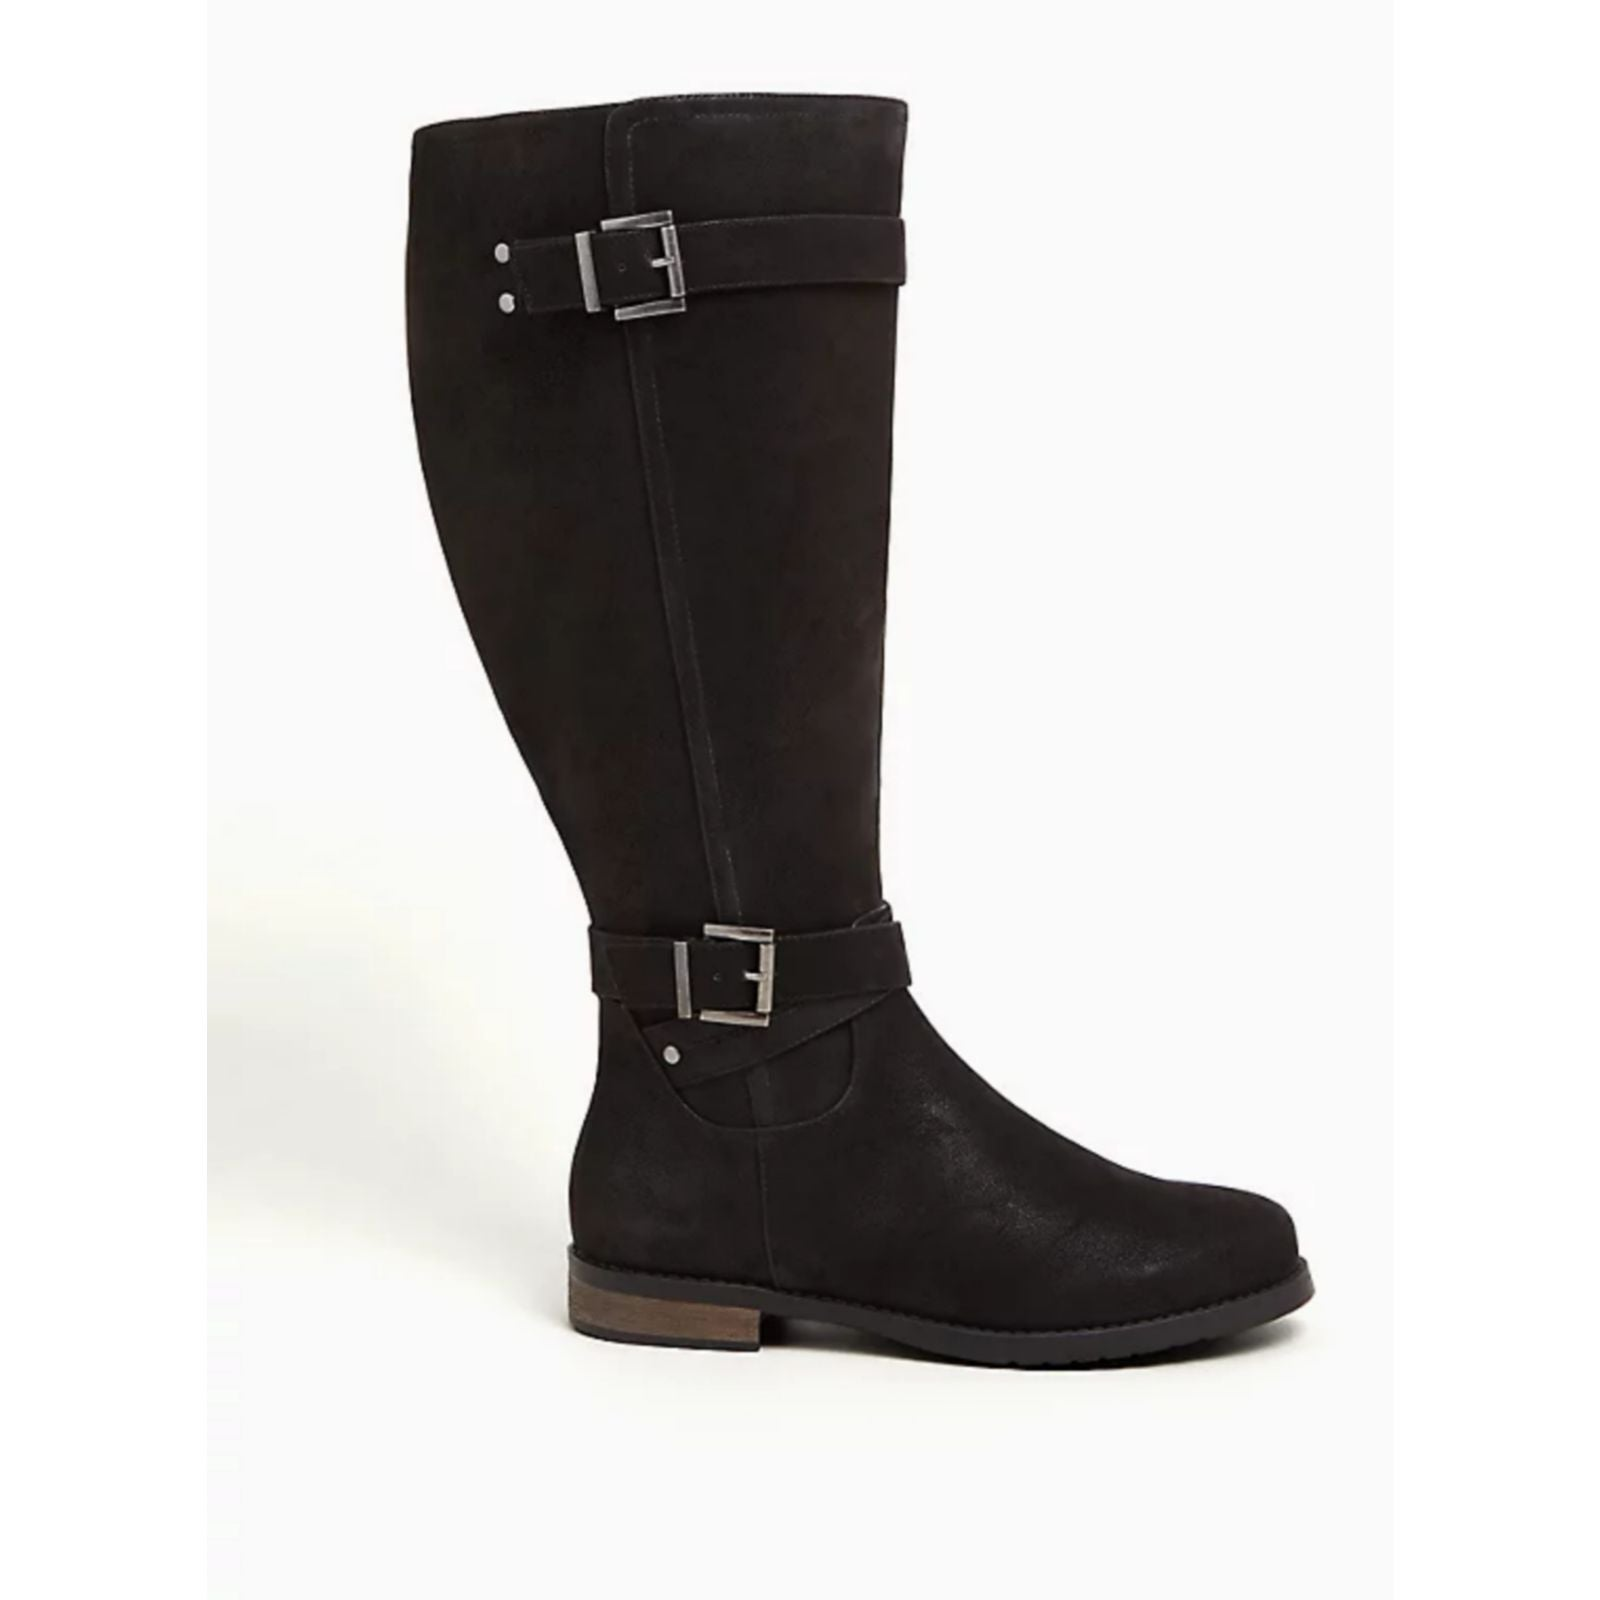 Torrid Faux Leather Knee-High Boot